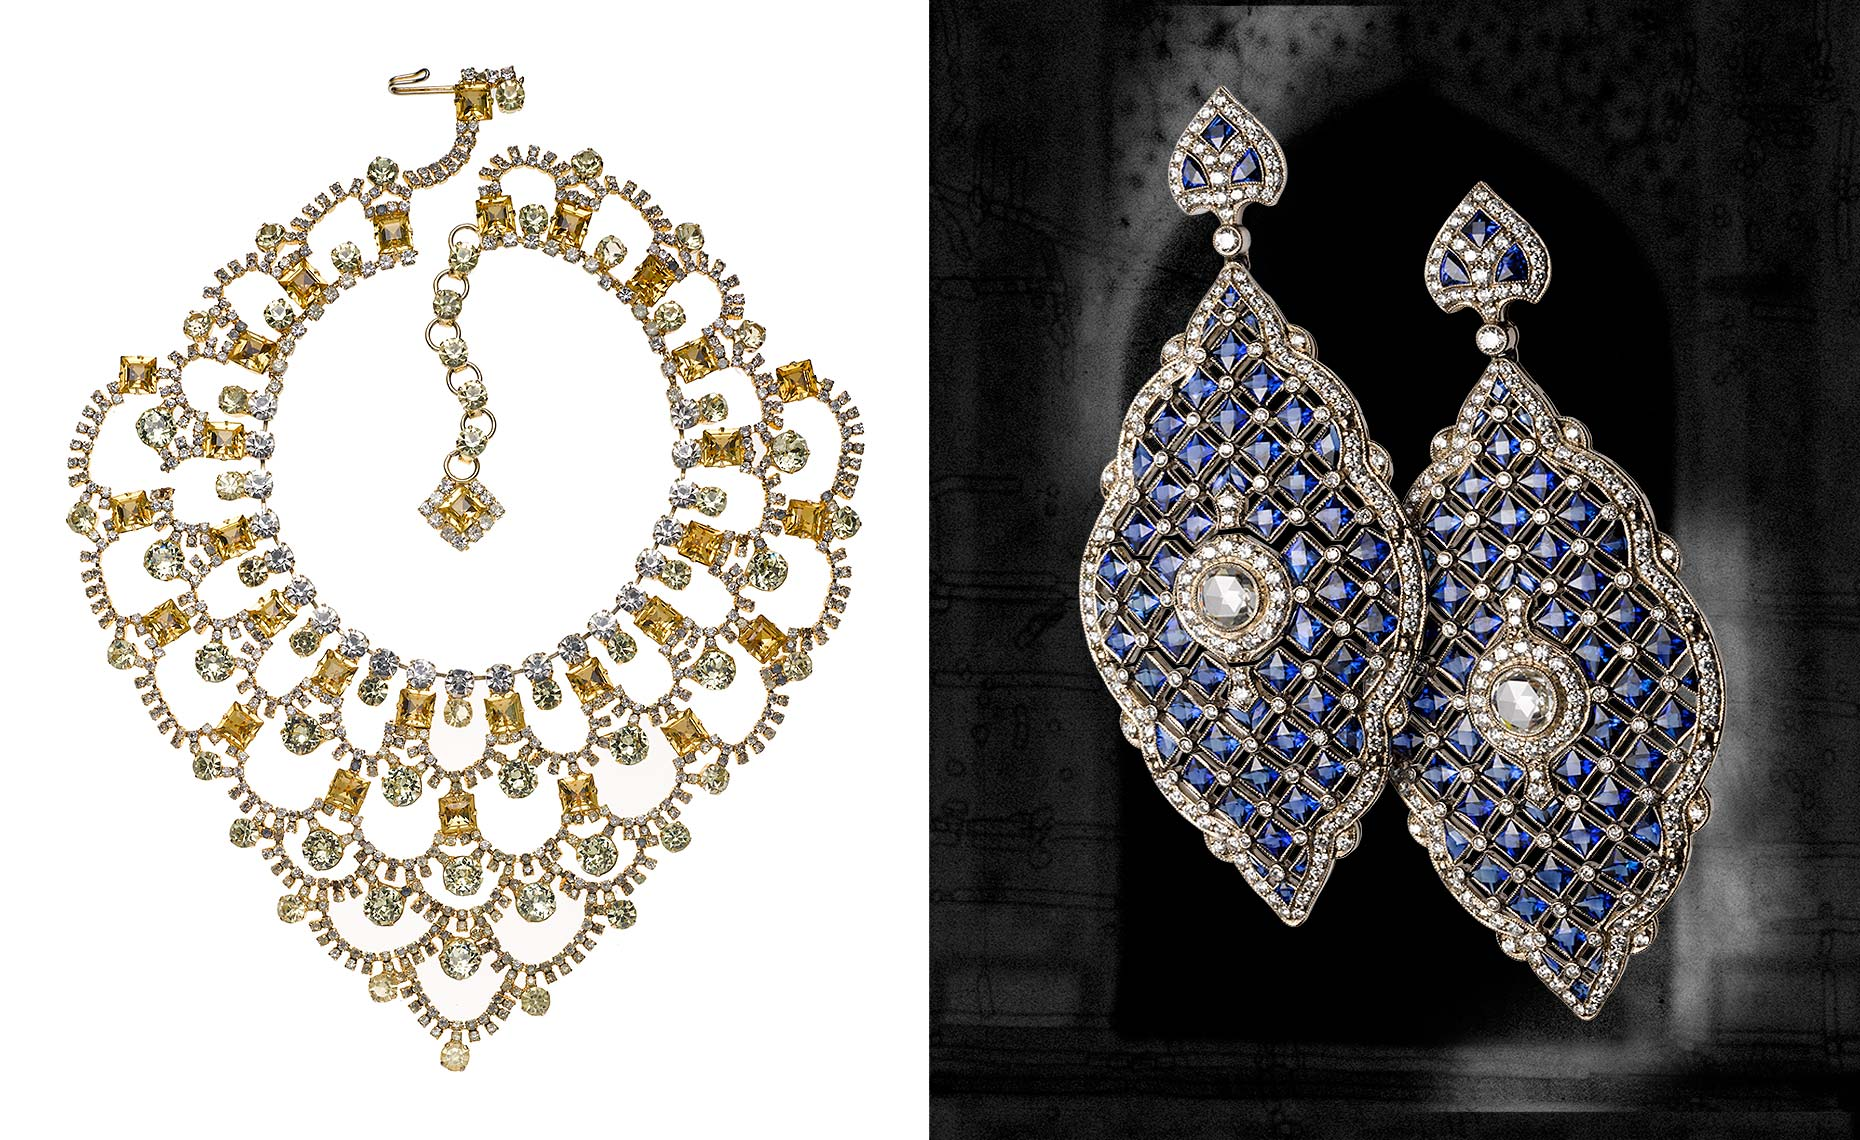 Lawrence Vrba designed necklace for La Cage aux Folles and Kwiat  earrings of sapphire and diamond s